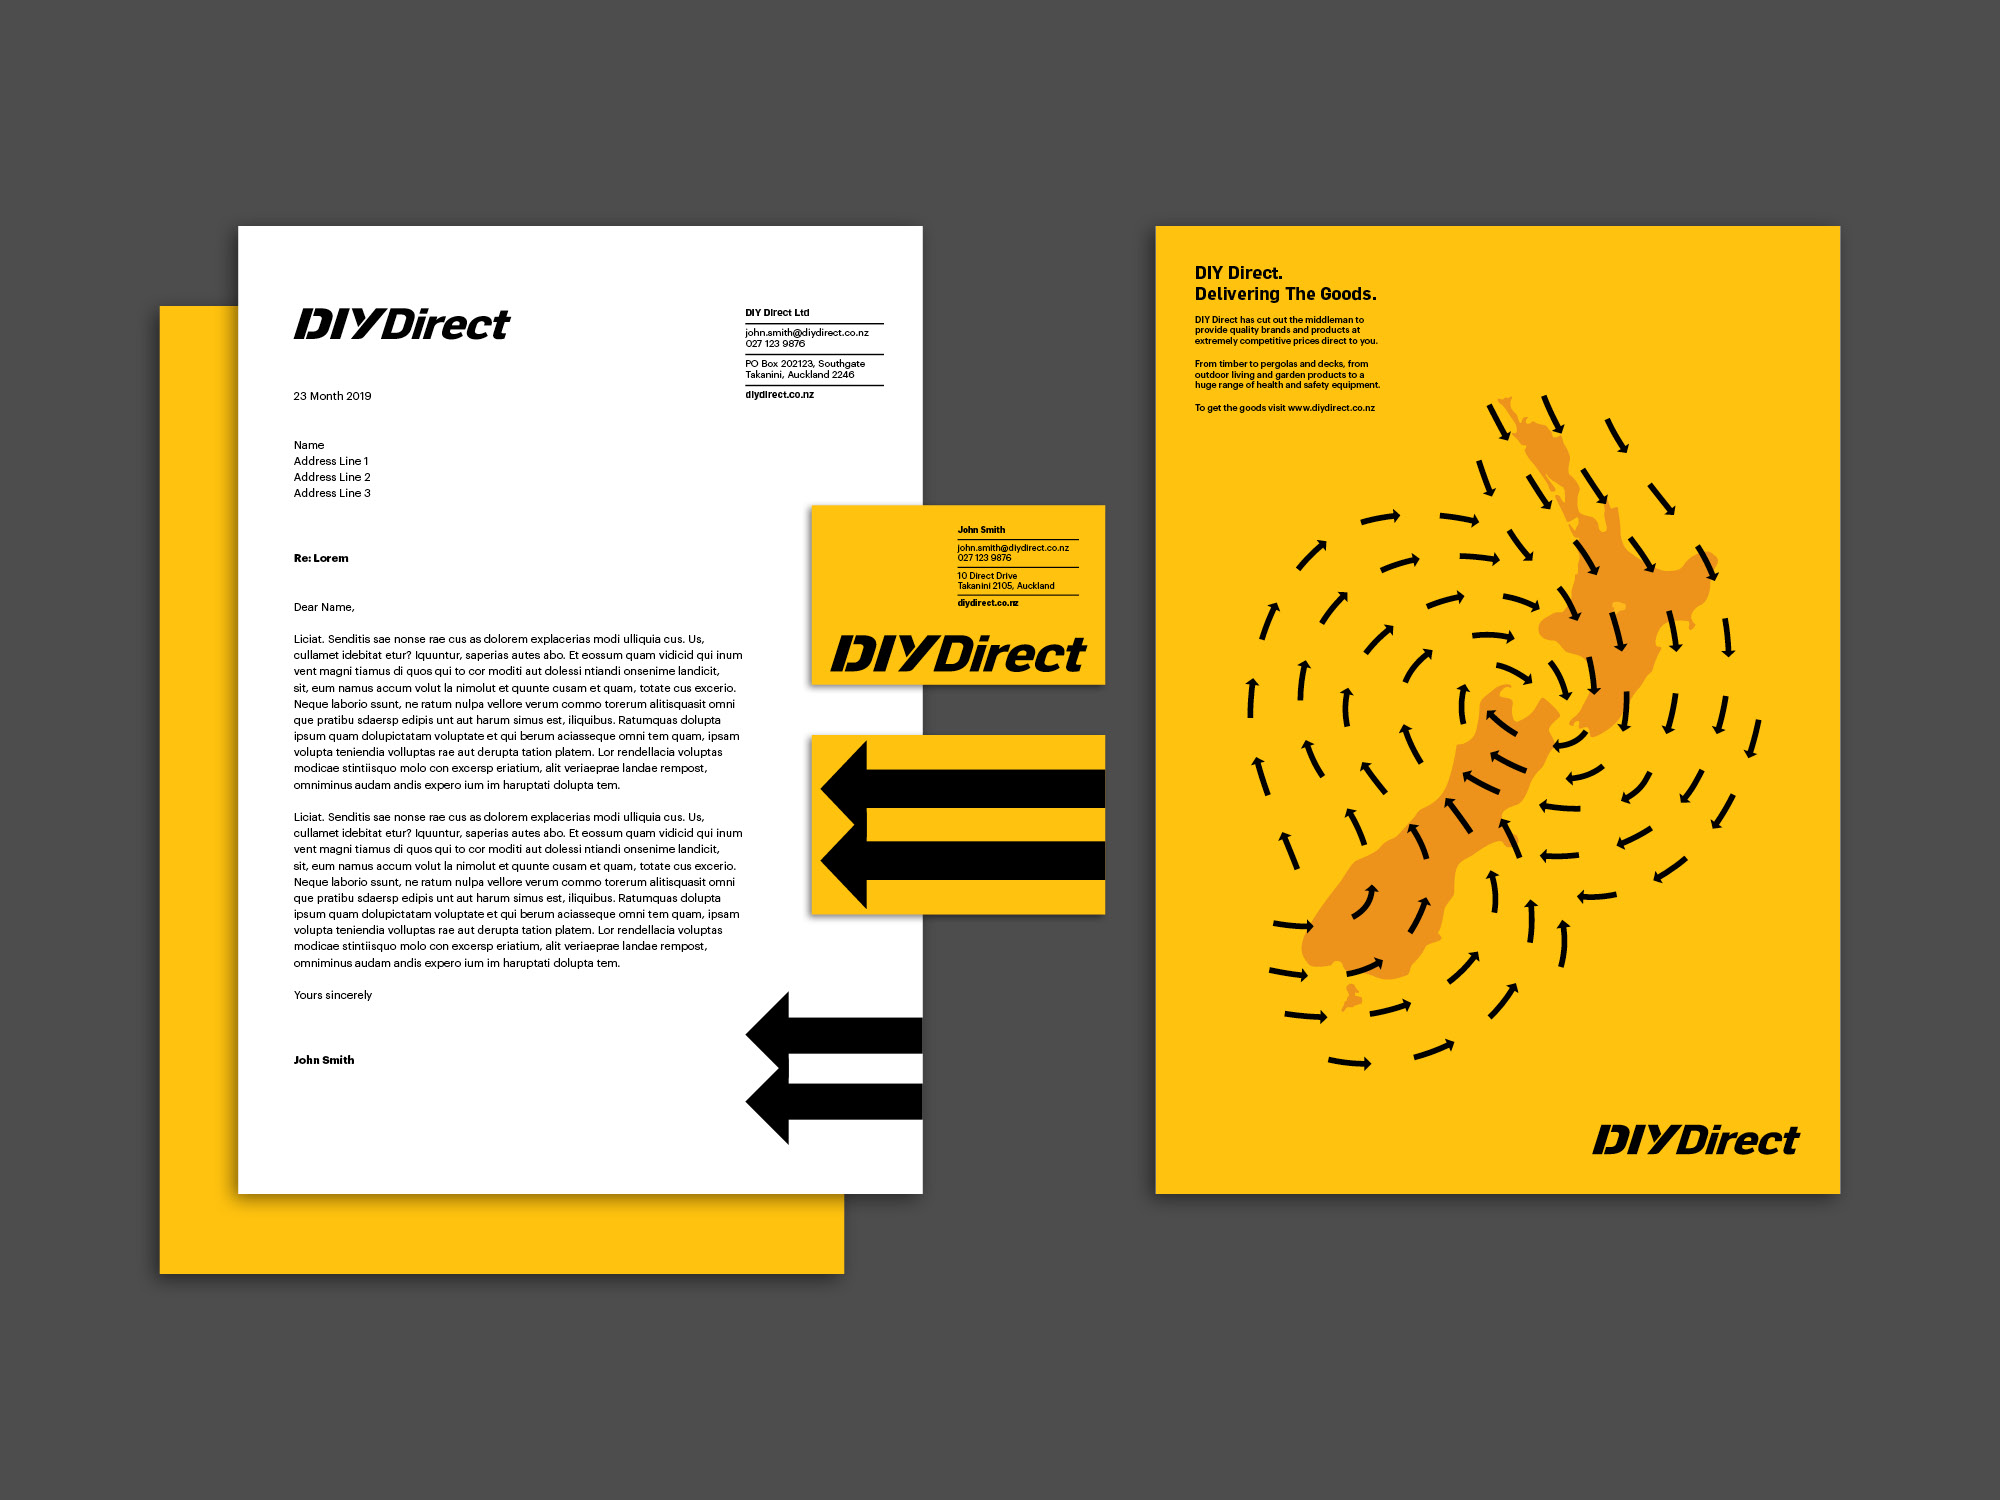 onfire design diy direct branding identity website 8